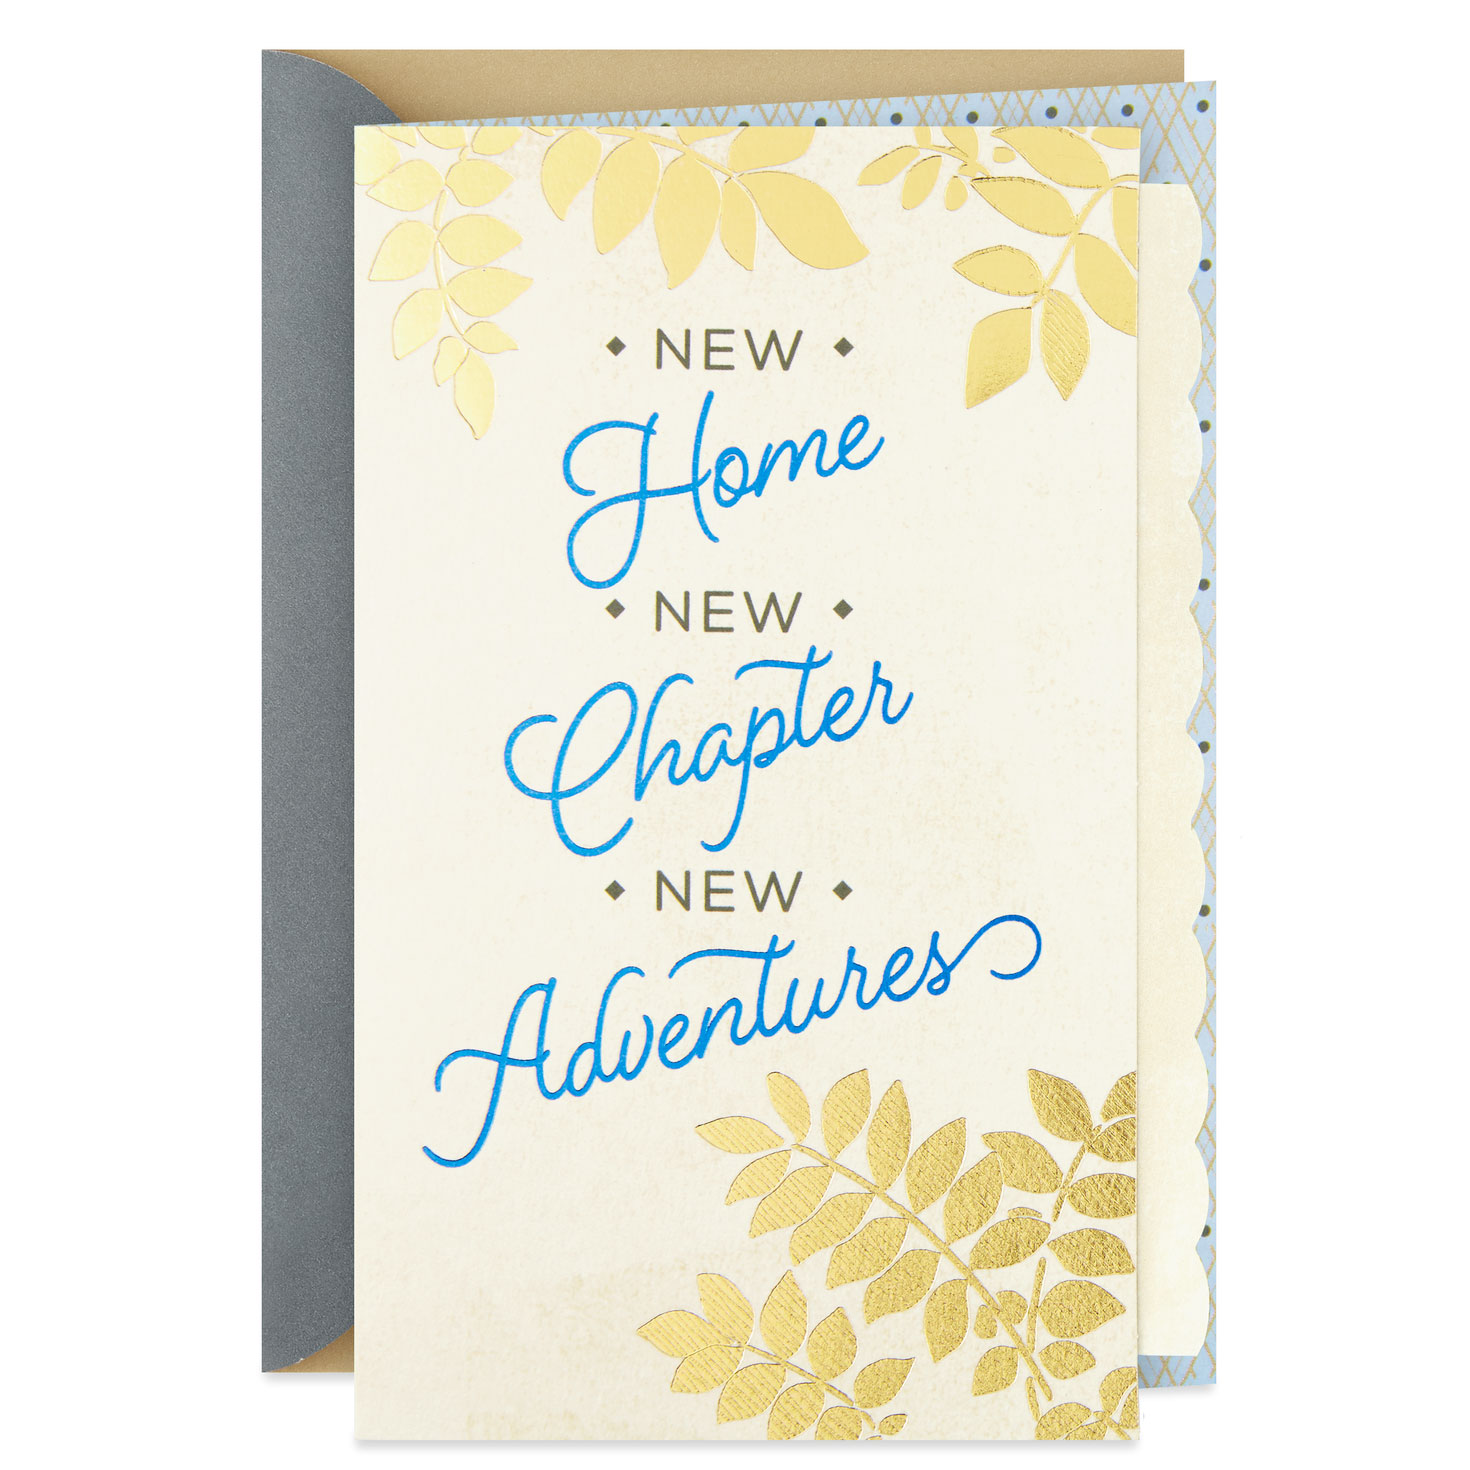 New Chapter New Adventures New Home Congratulations Card